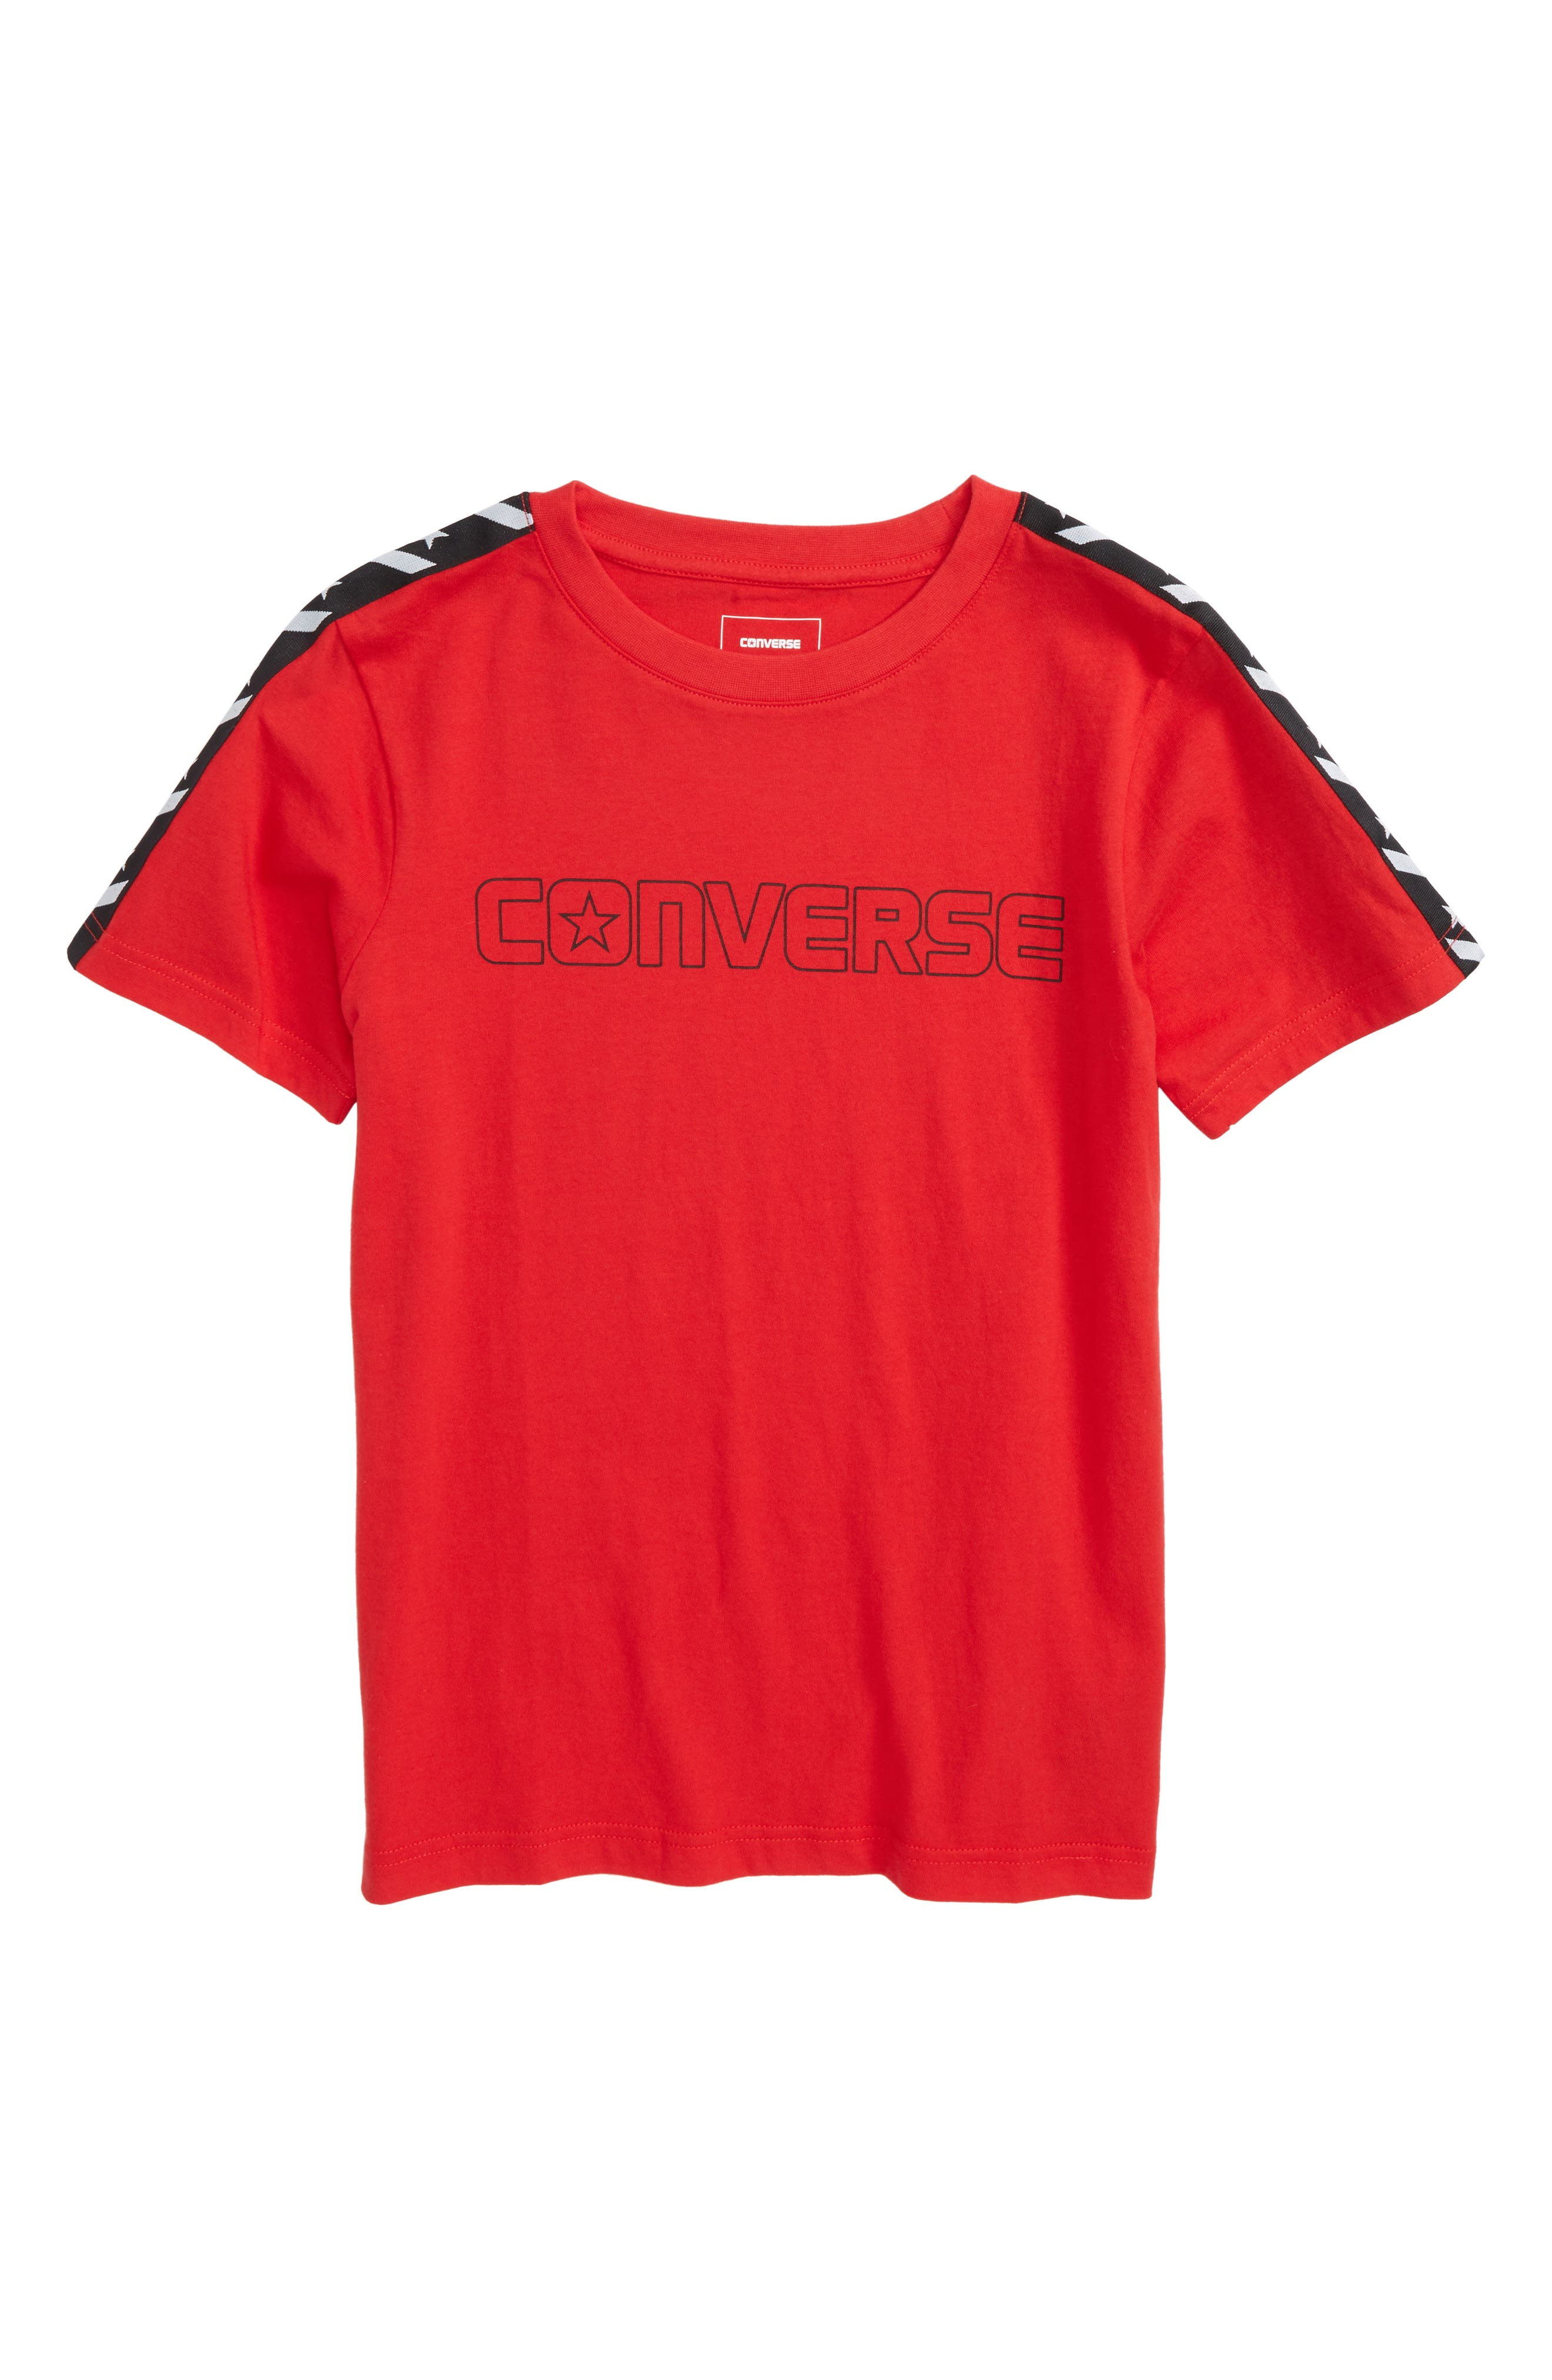 Stars & Logo Graphic T-Shirt,                         Main,                         color, Converse Red